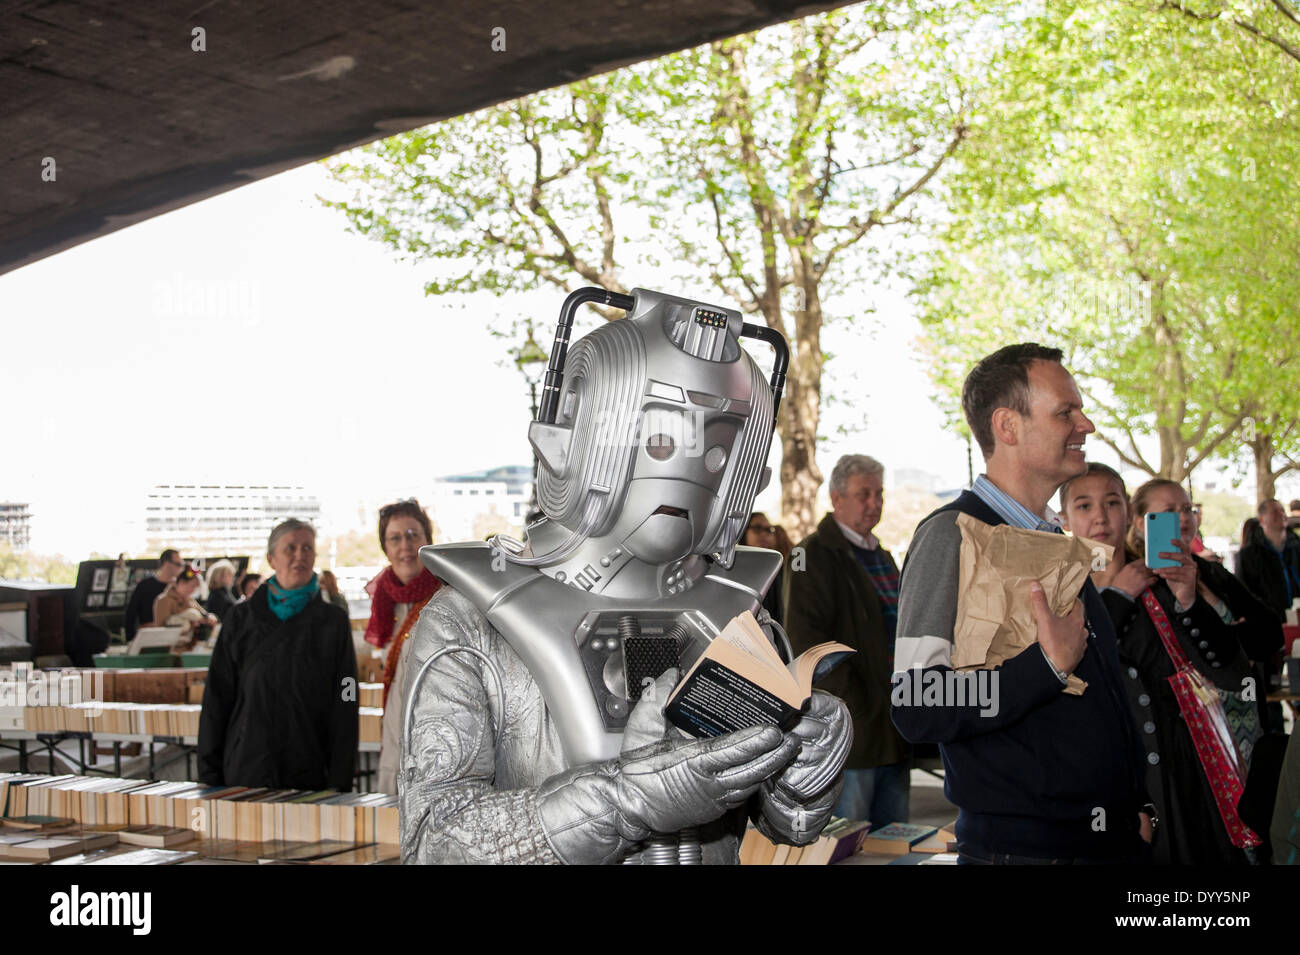 London, 27 April 2014 - people dressed as their favourite sci-fi characters take part in the Sci-Fi London 2014 costume parade starting at Somerset House and finishing at the BFI on the South Bank.  A cyberman reads a book at the book market underneath Waterloo Bridge.    Credit:  Stephen Chung/Alamy Live News - Stock Image